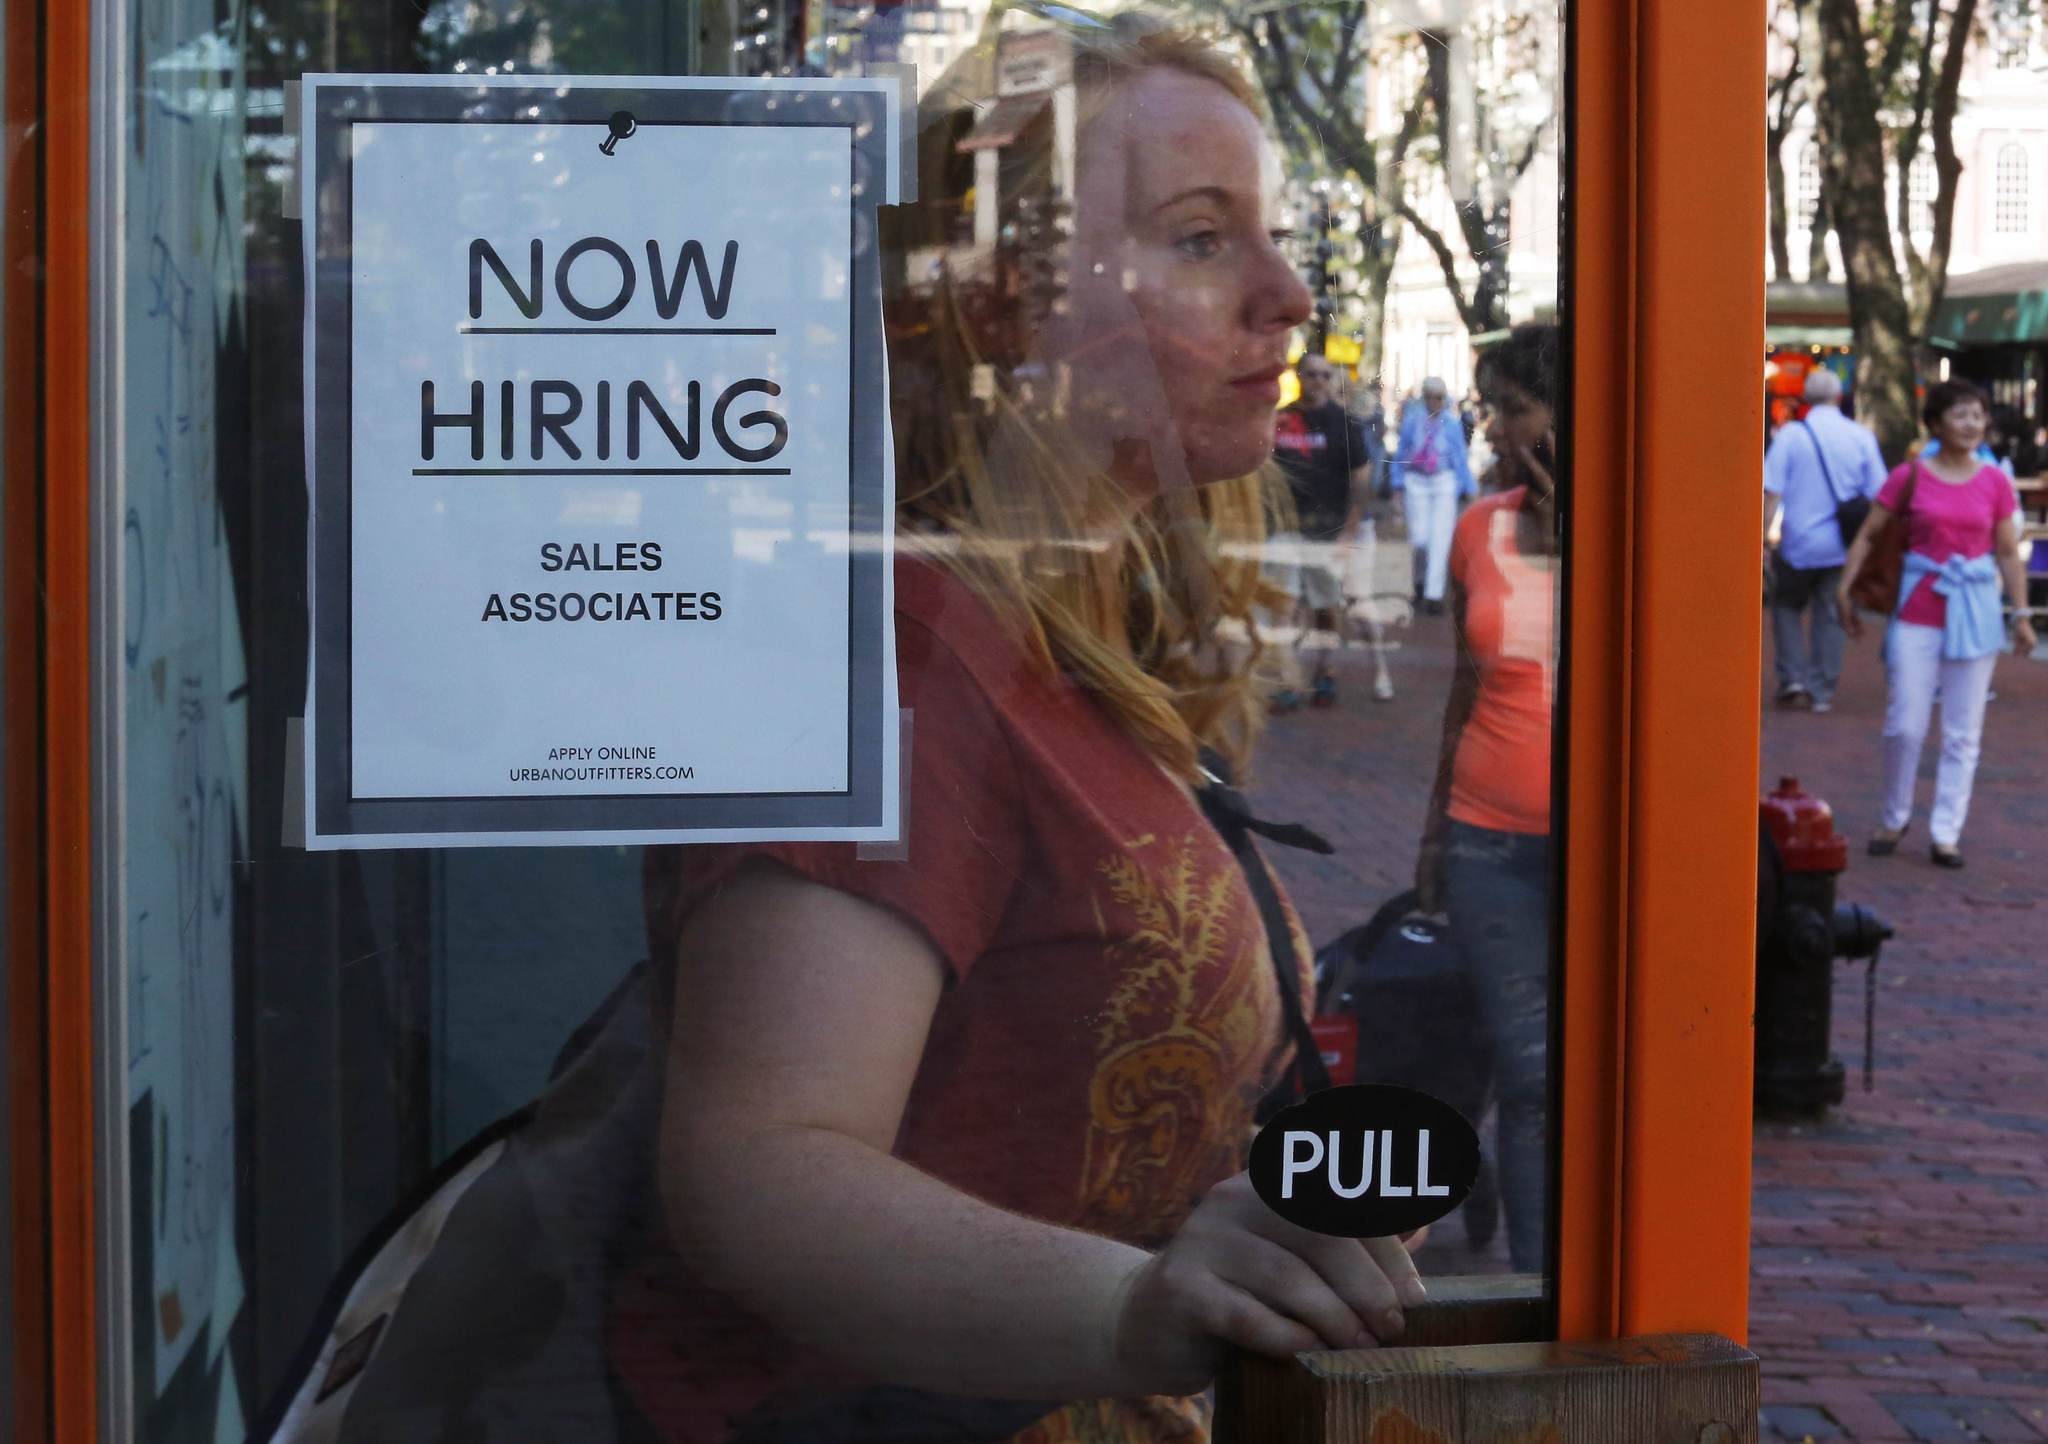 Survey: Only 9% of Chicago firms plan to expand hiring in next 6 months